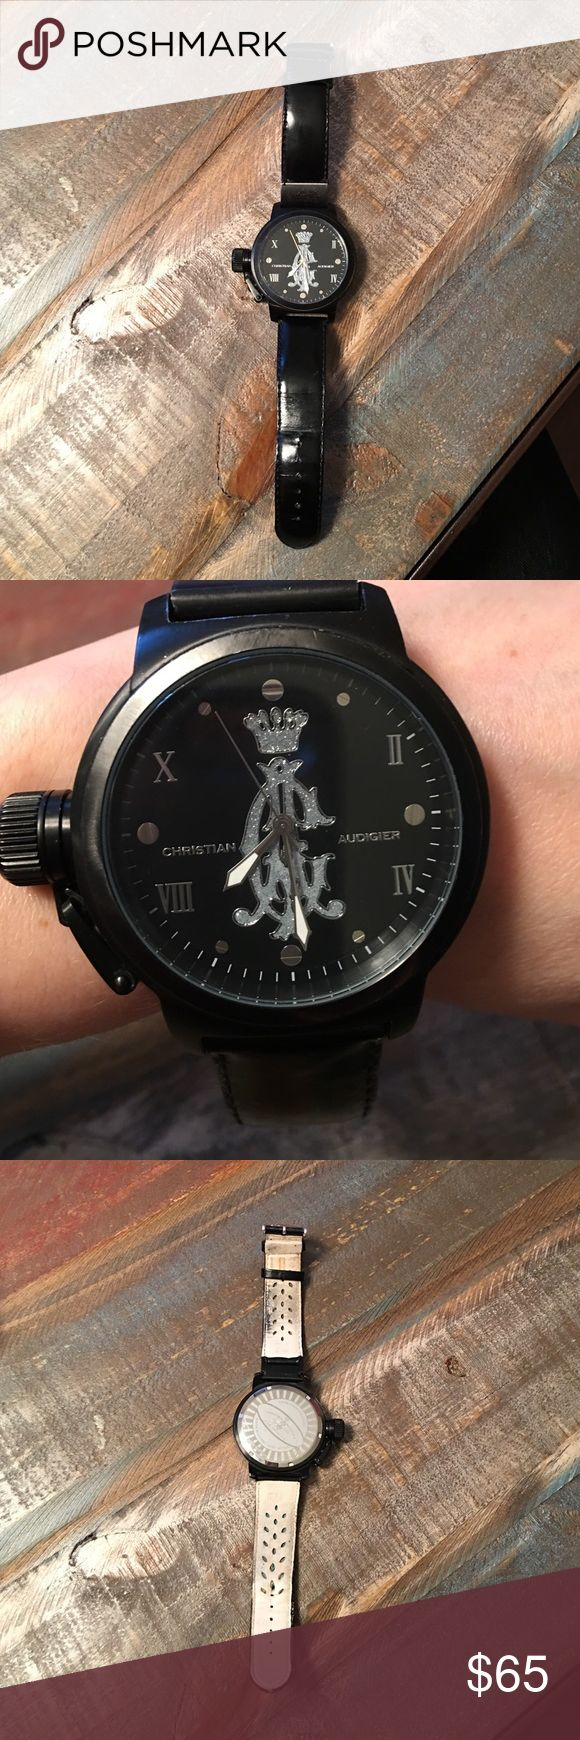 Men's black Christian Audigier Watch The Christian Audigier Eternity Black Metal Ion Plating Watch is stylish and sleek. The polished silver-tone hands have luminous accents, making this timepiece easy-to-read day or night. Water resistant up to 165 ft. Model No ETE-117. Glass face is in great condition, but there are scratches around the side, and the back is heavily scratched. Band is very worn, and it needs a battery. A great piece to add to your watch collection for everyday wear…